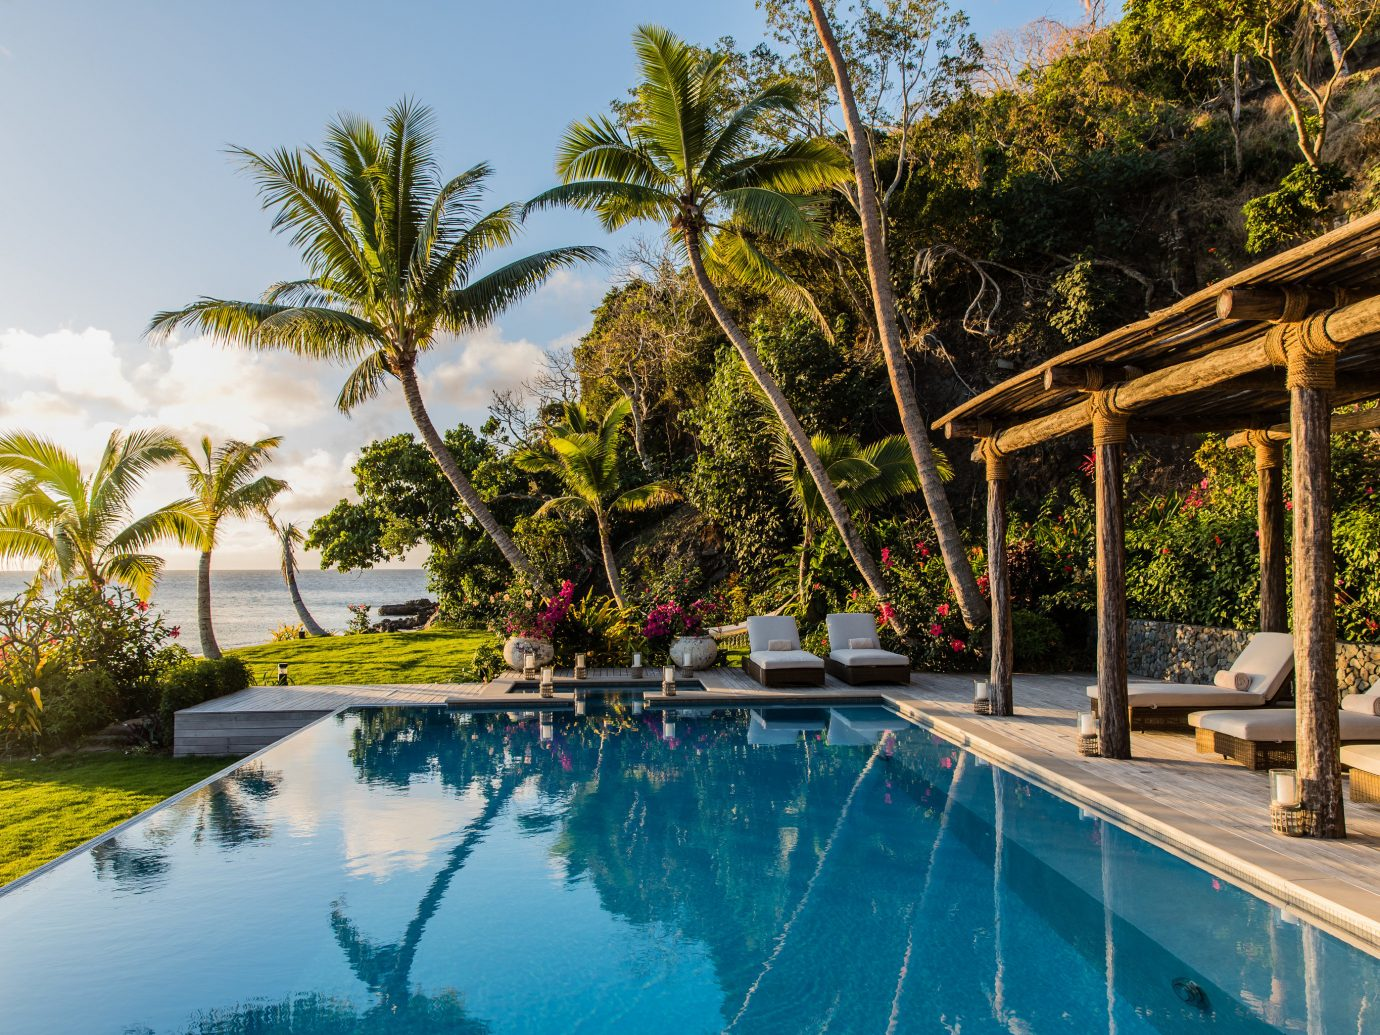 Boutique Hotels Hotels Luxury Travel tree outdoor sky Resort swimming pool property palm tree estate arecales leisure real estate Villa tropics vacation resort town plant water hacienda cottage amenity